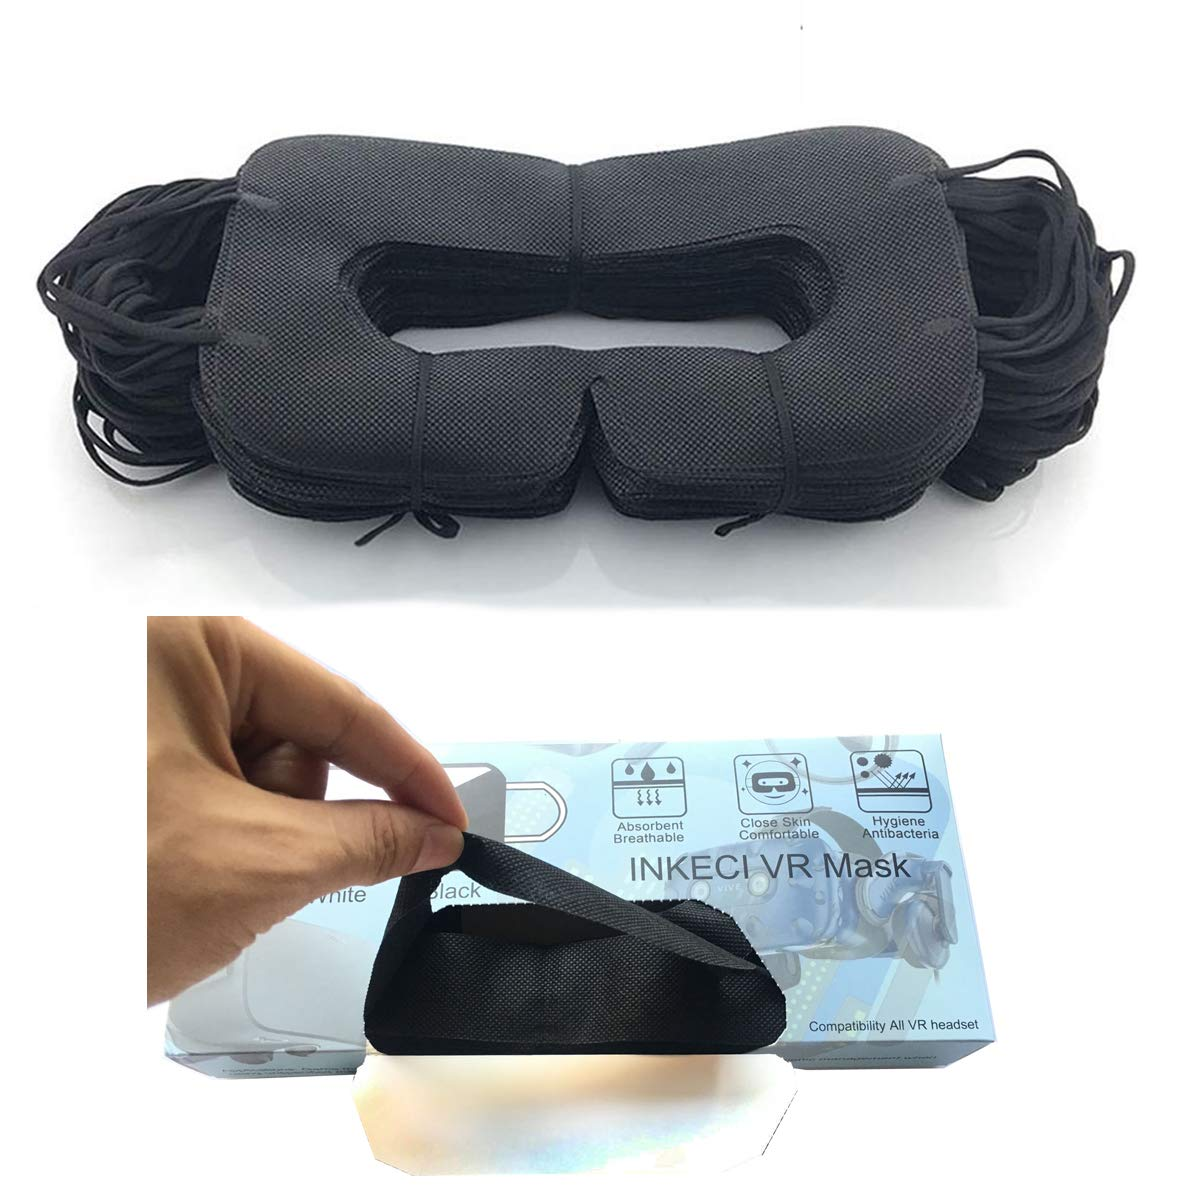 VR Mask 100pcs Disposable Face Cover Mask, Sanitary Mask Prevent Eye Infections by INKECI